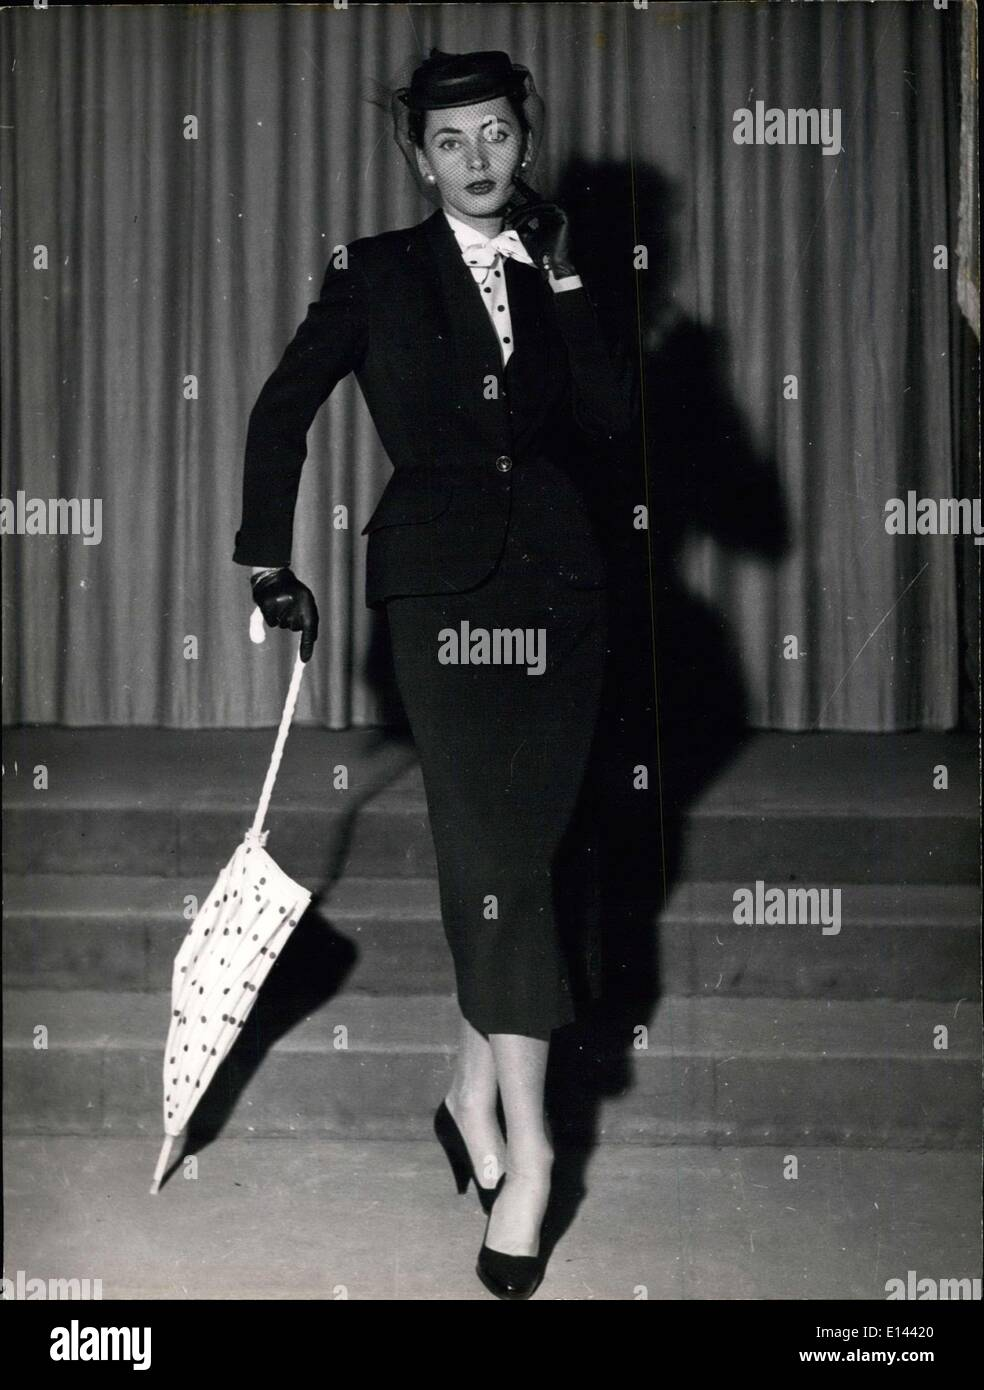 Apr. 04, 2012 - Paris Fashion: Spring 1953: ''Dandy'', Navy blue tailored suit. Designed by Maggy Rouff. to - Stock Image